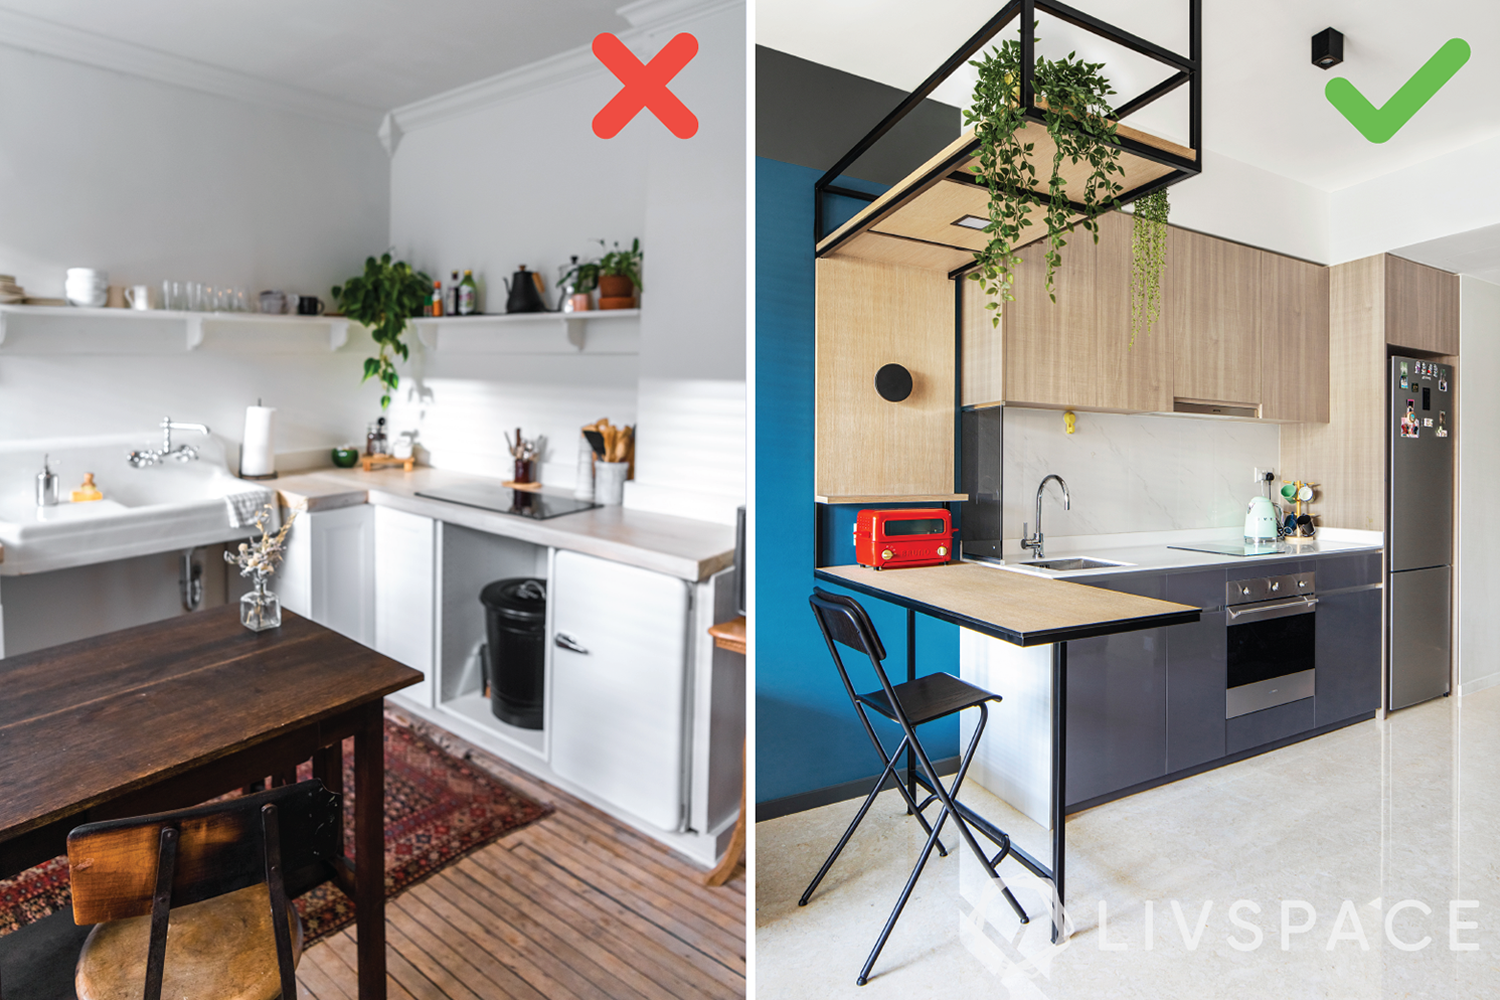 9 Terrible Kitchen Design Mistakes and How to Fix Them Now